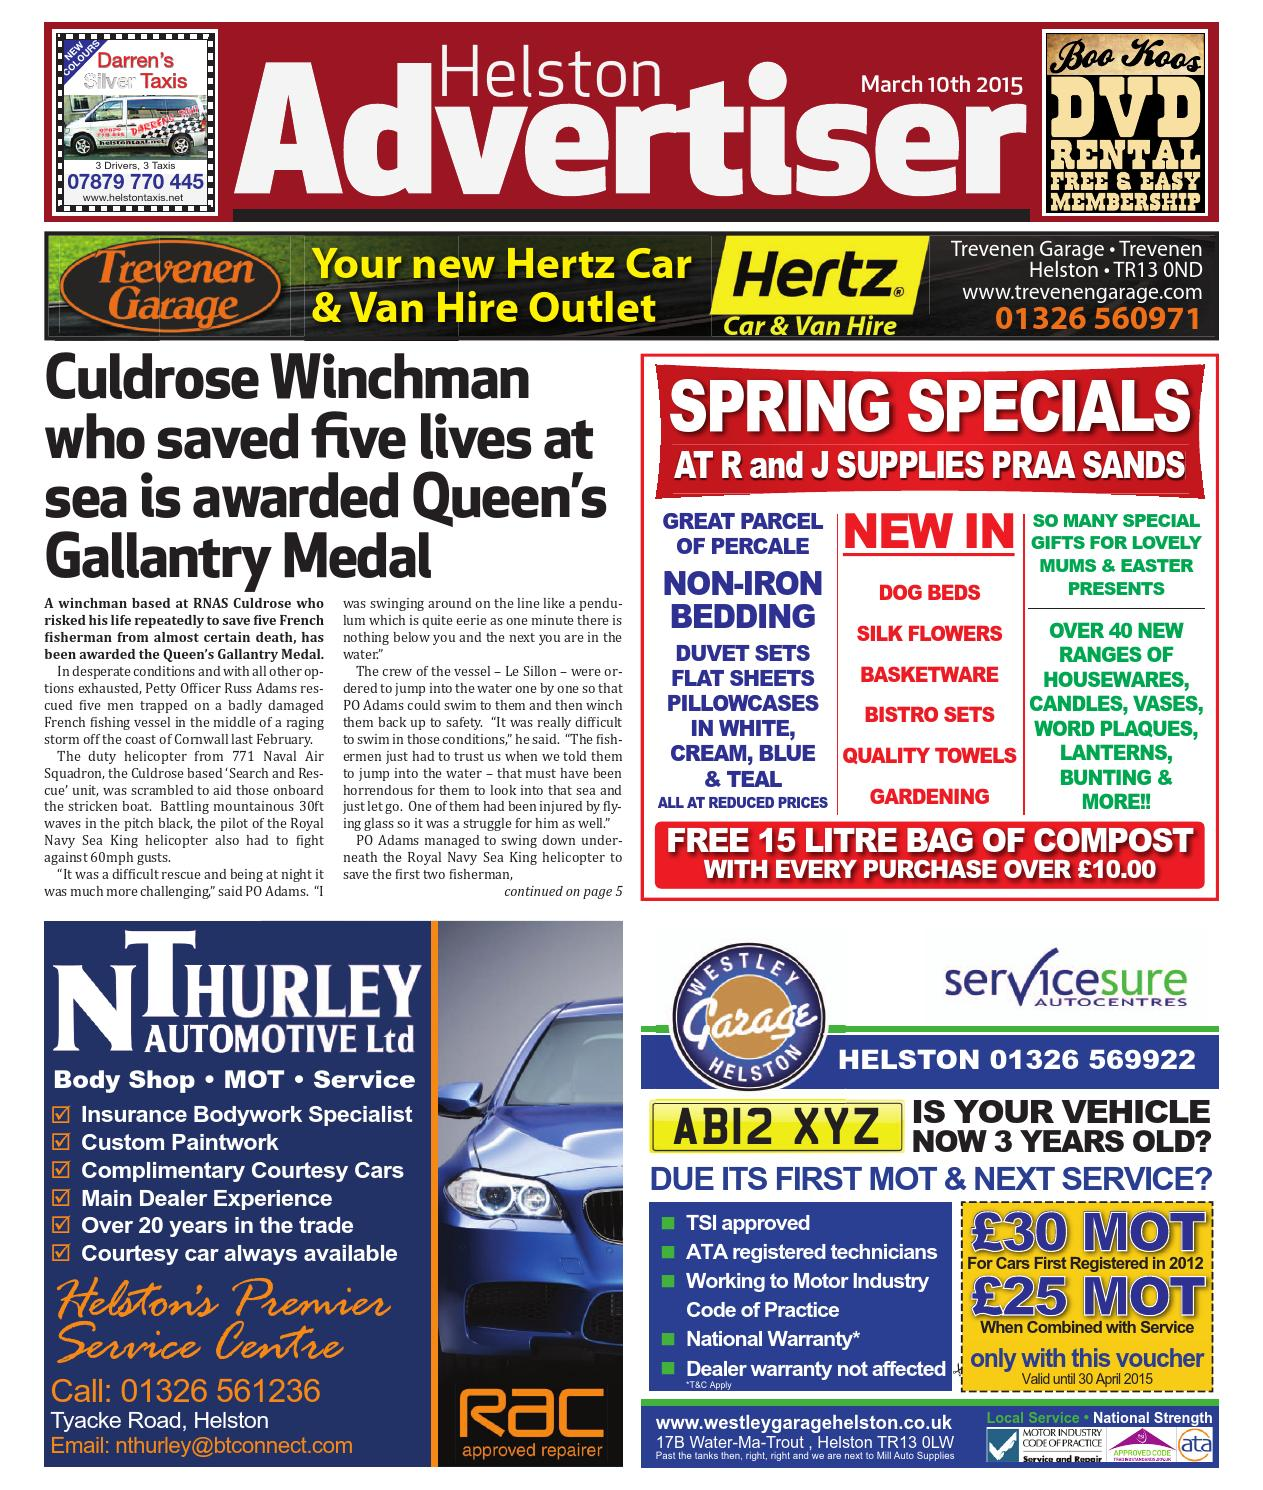 Helston advertiser 10th march 2015 by helston advertiser issuu fandeluxe Images